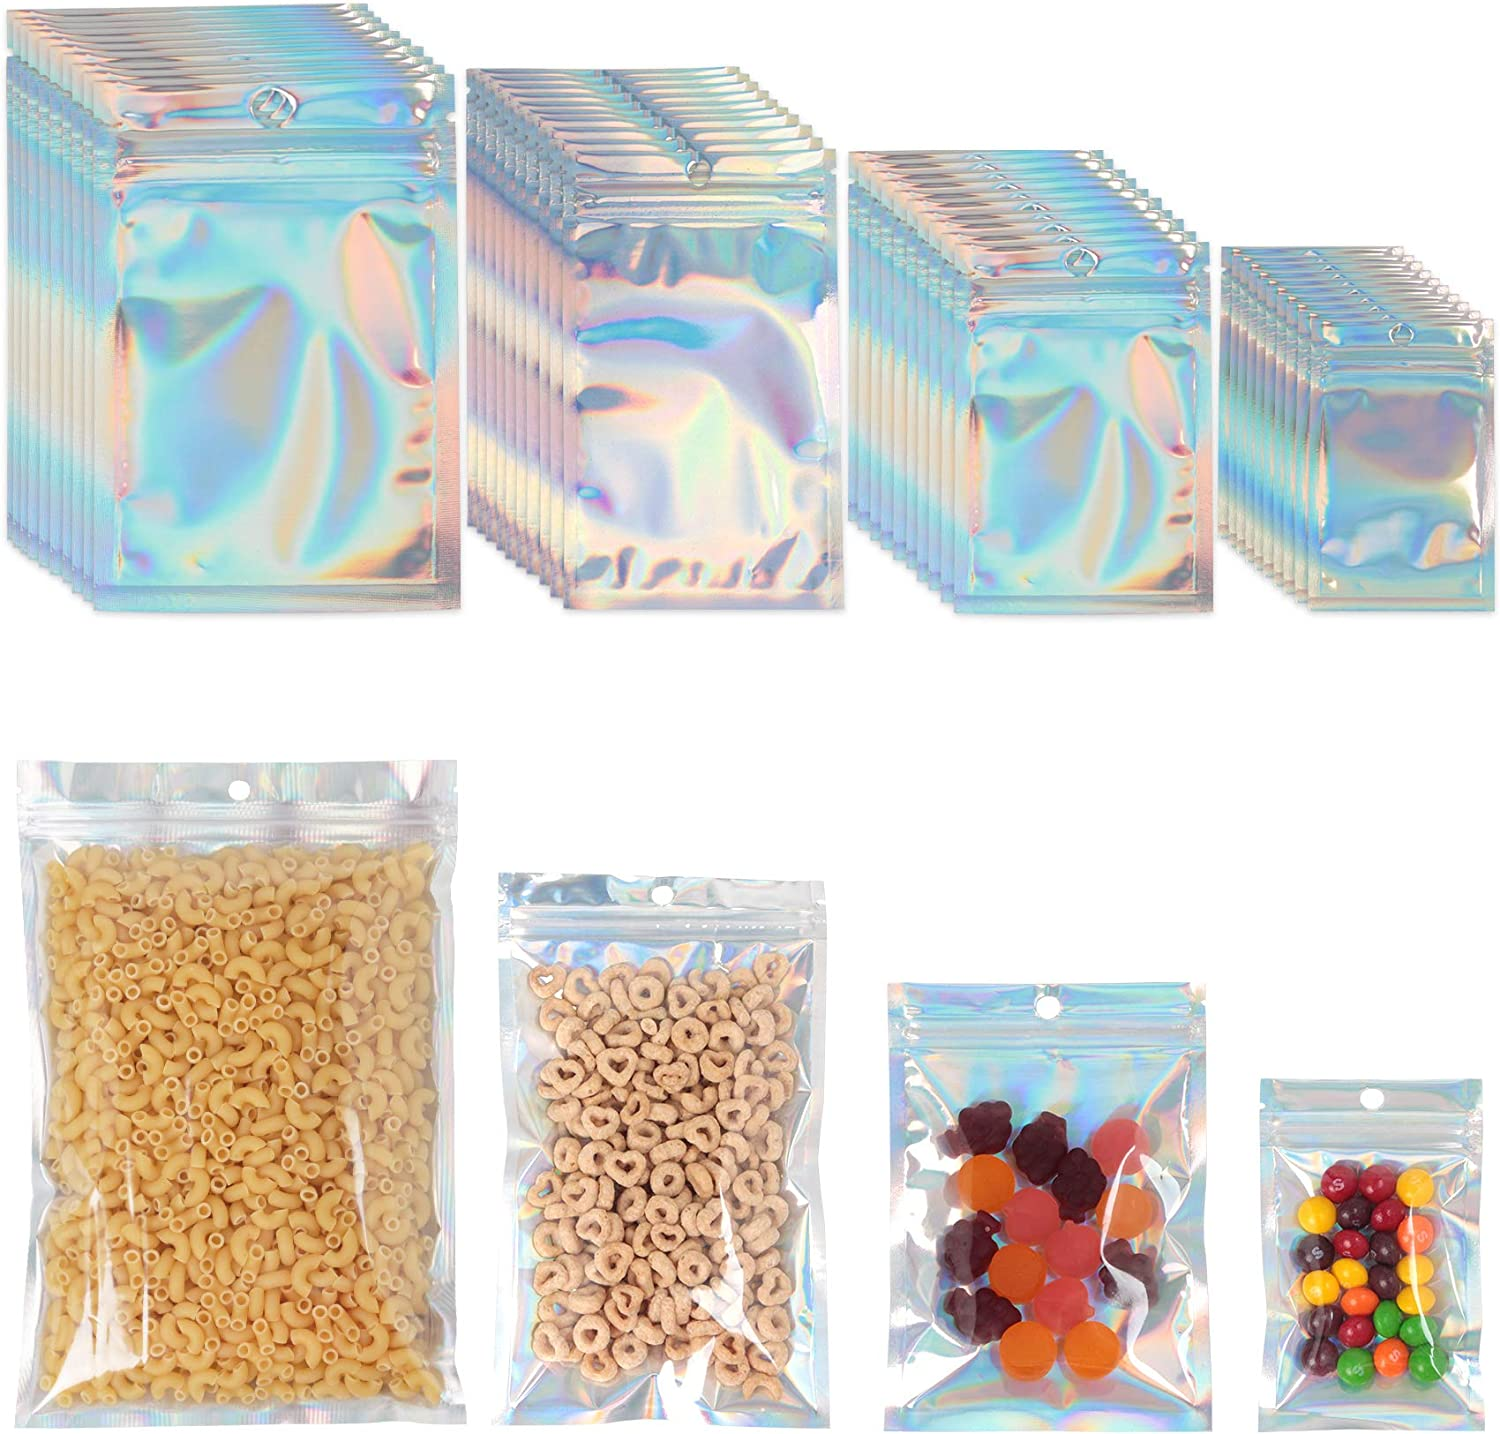 PUiKUS 100 PCS Reusable Mylar Bags ,Smell Proof Bags with Ziplock and Clear Window, for Candy and Food Packaging, Food Self Sealing Storage Supplie (Holographic)